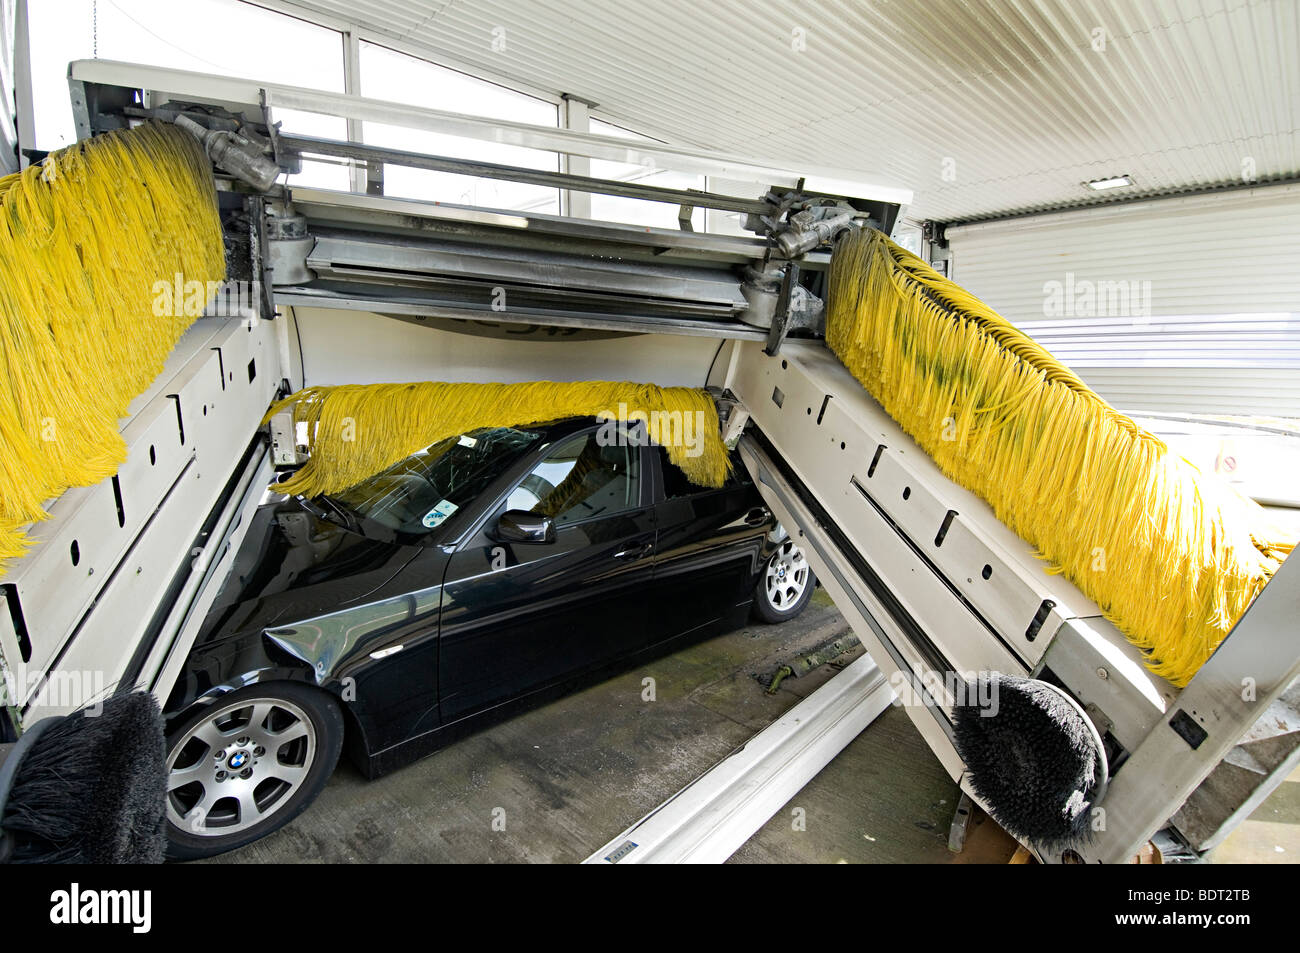 Car Wash Brush >> a bmw 3 series crushed in a car wash accident after driver lost Stock Photo: 25729995 - Alamy